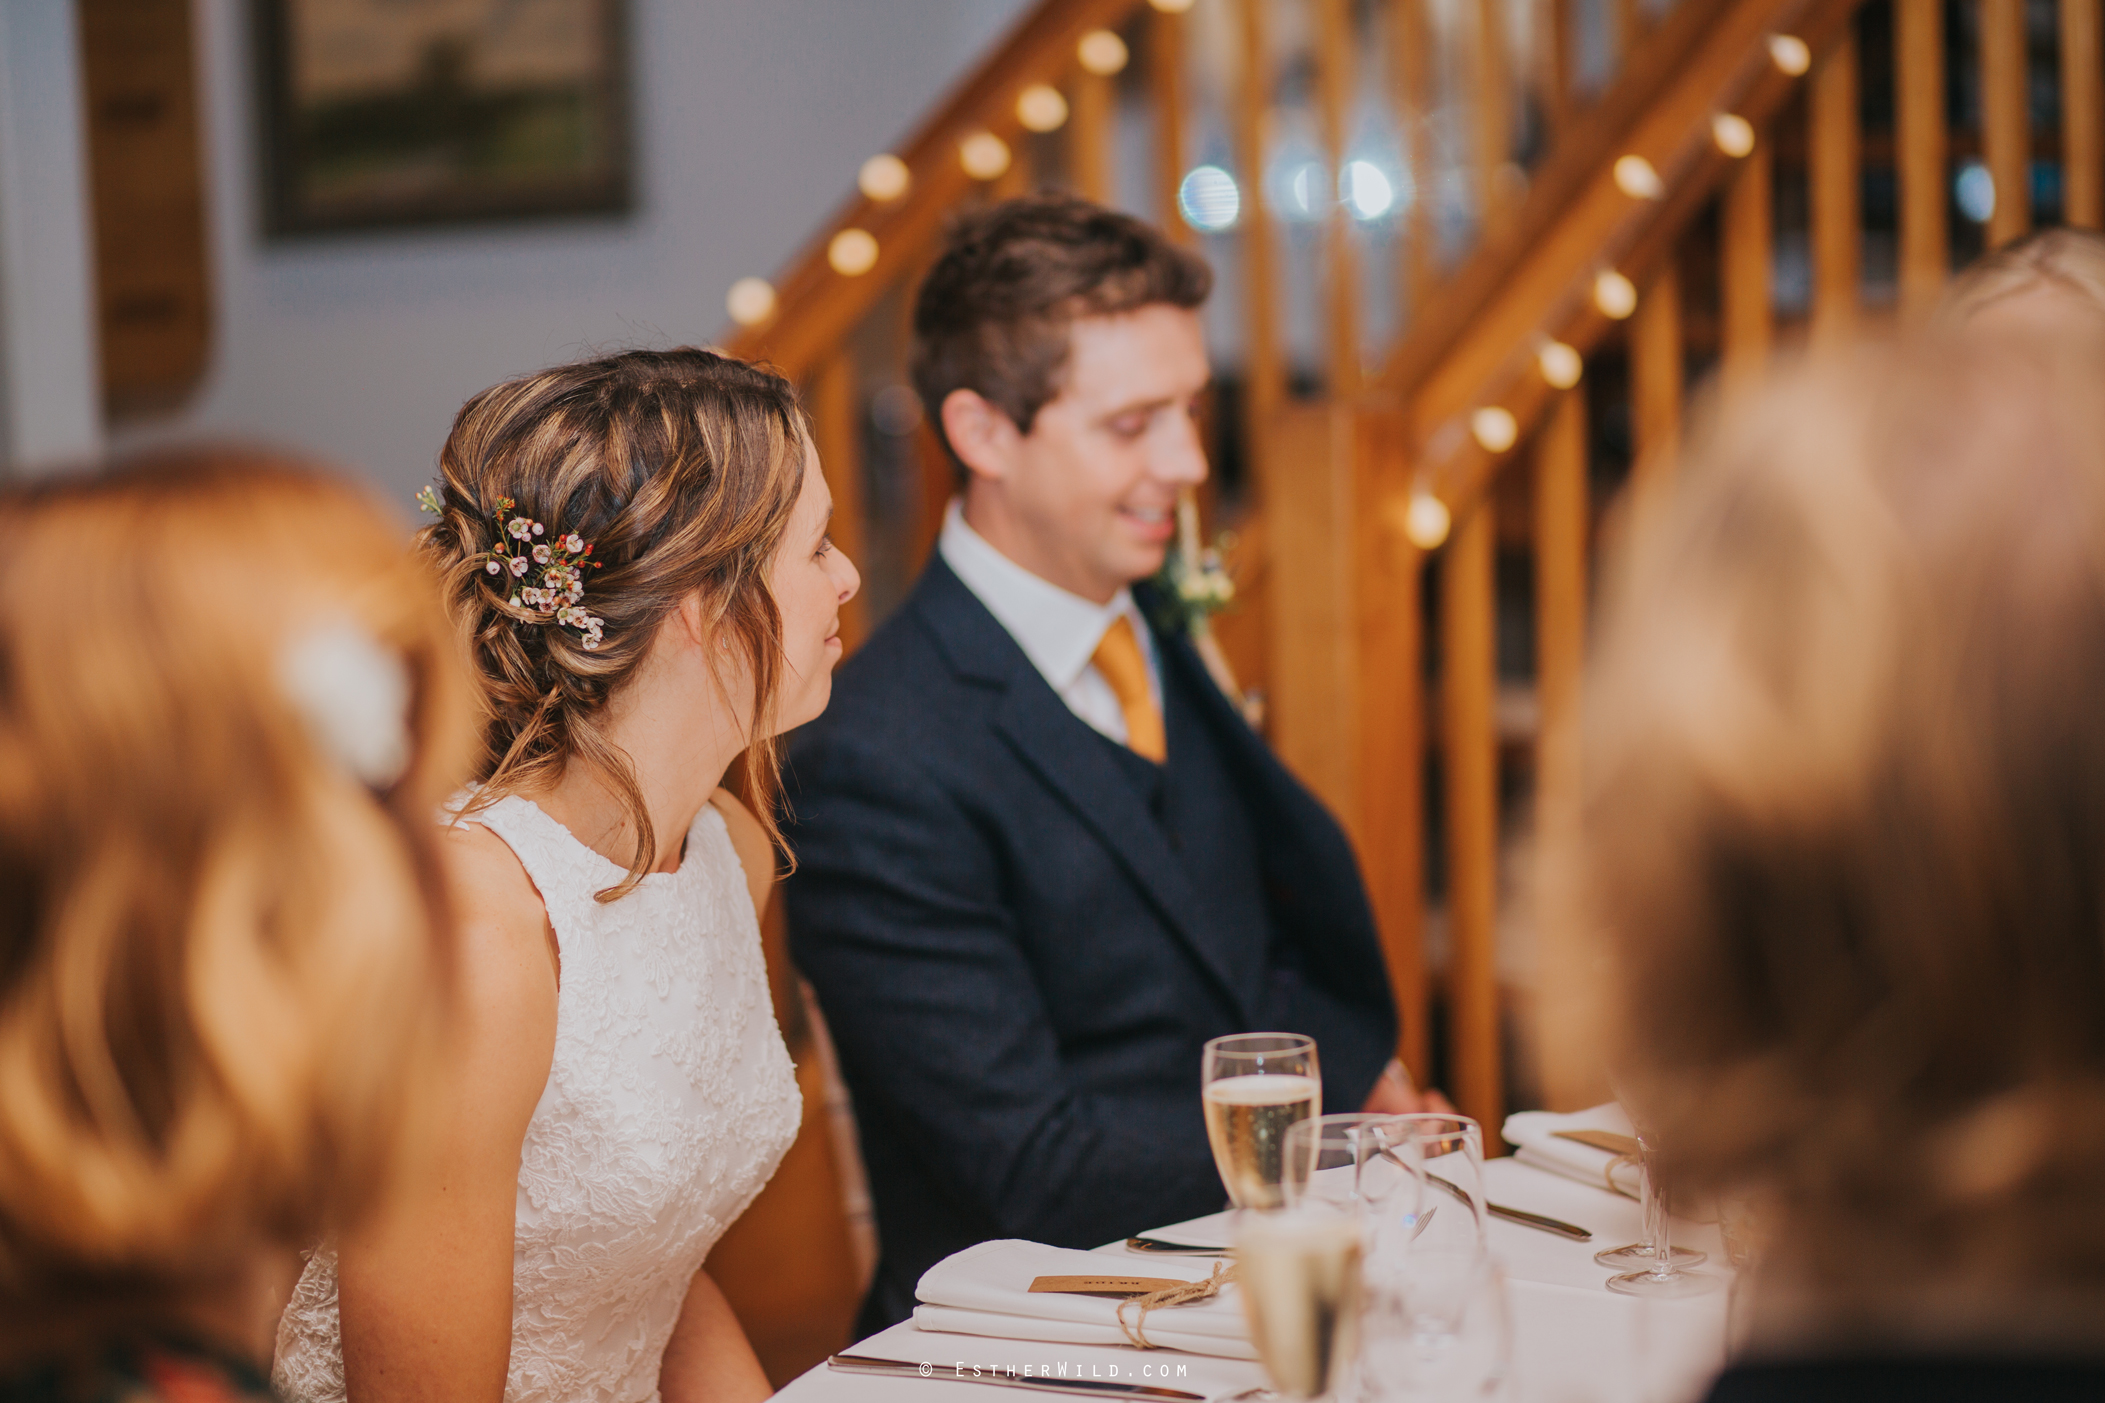 Wedding_Photographer_Chaucer_Barn_Holt_Norfolk_Country_Rustic_Venue_Copyright_Esther_Wild_IMG_1574_Z72A0776.jpg